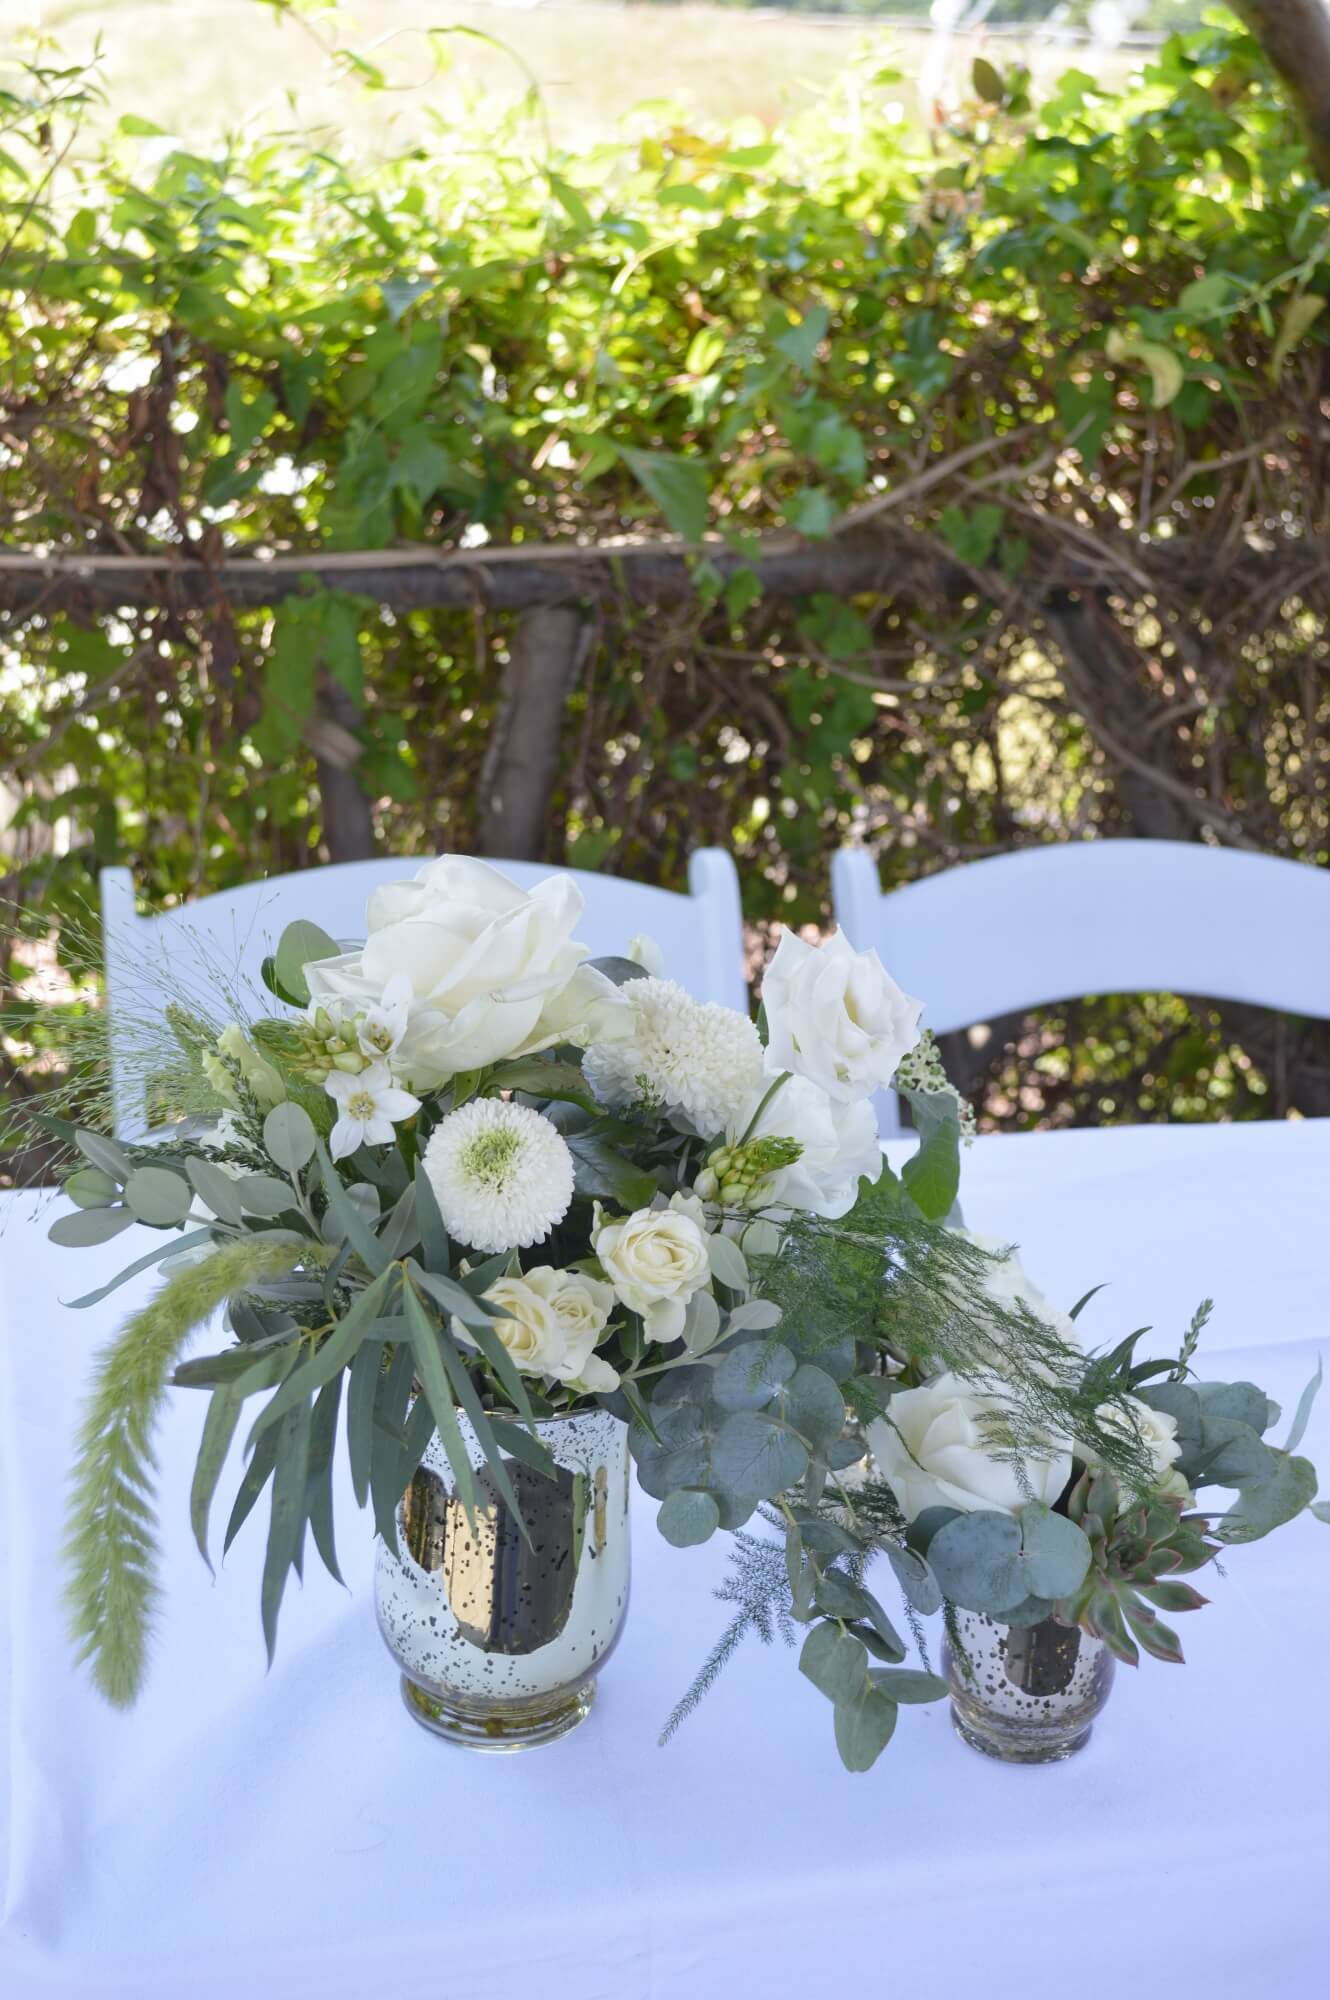 small gold vases with natural style white flowers and foliage